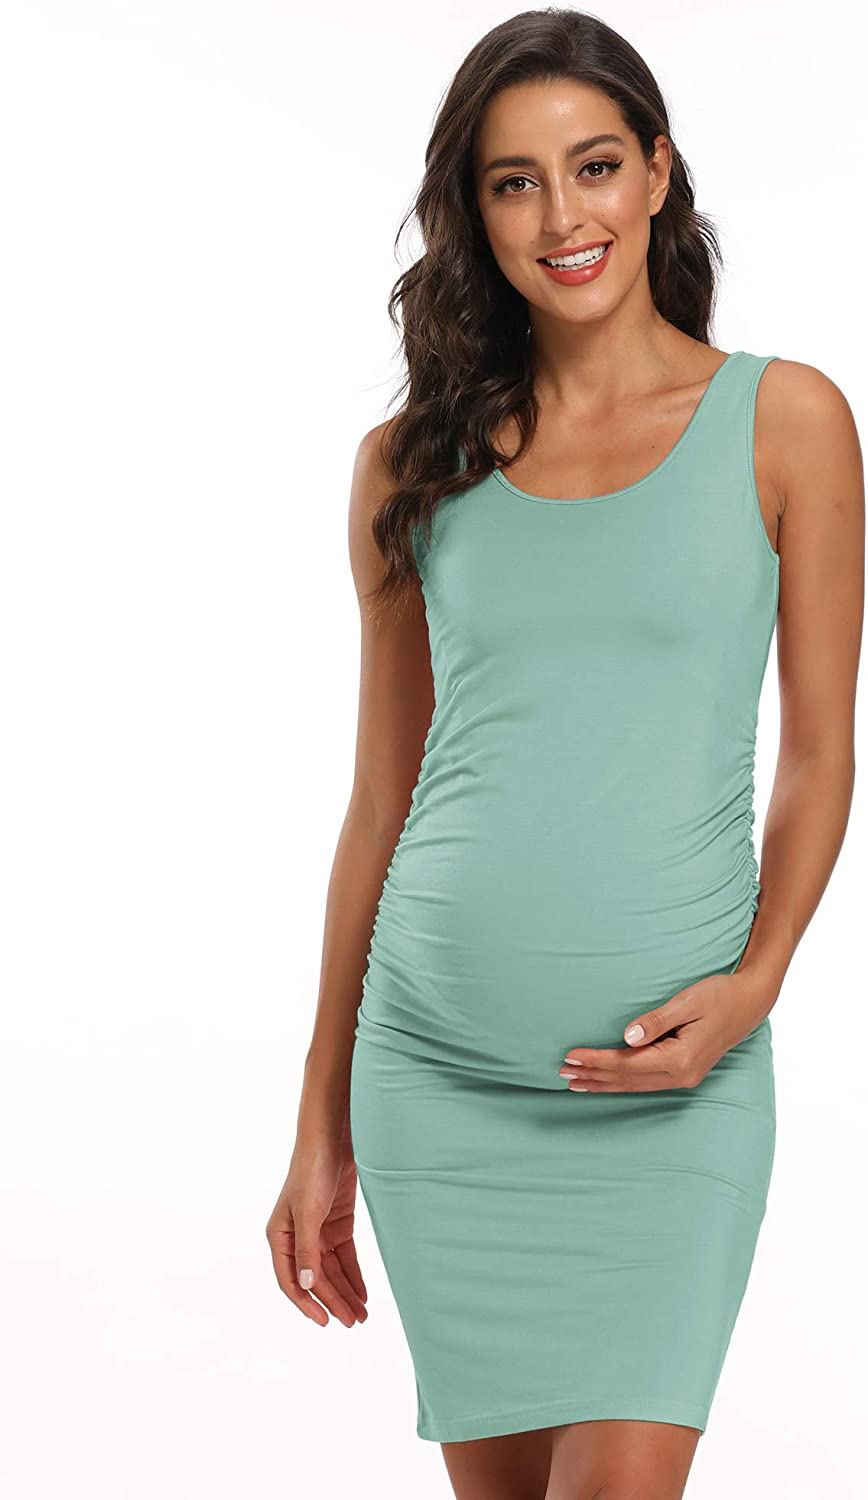 AMPOSH Womens Maternity Tank Dress Casual Ruched Bodycon Pregnancy Dress for Photoshoot and Daily Wear